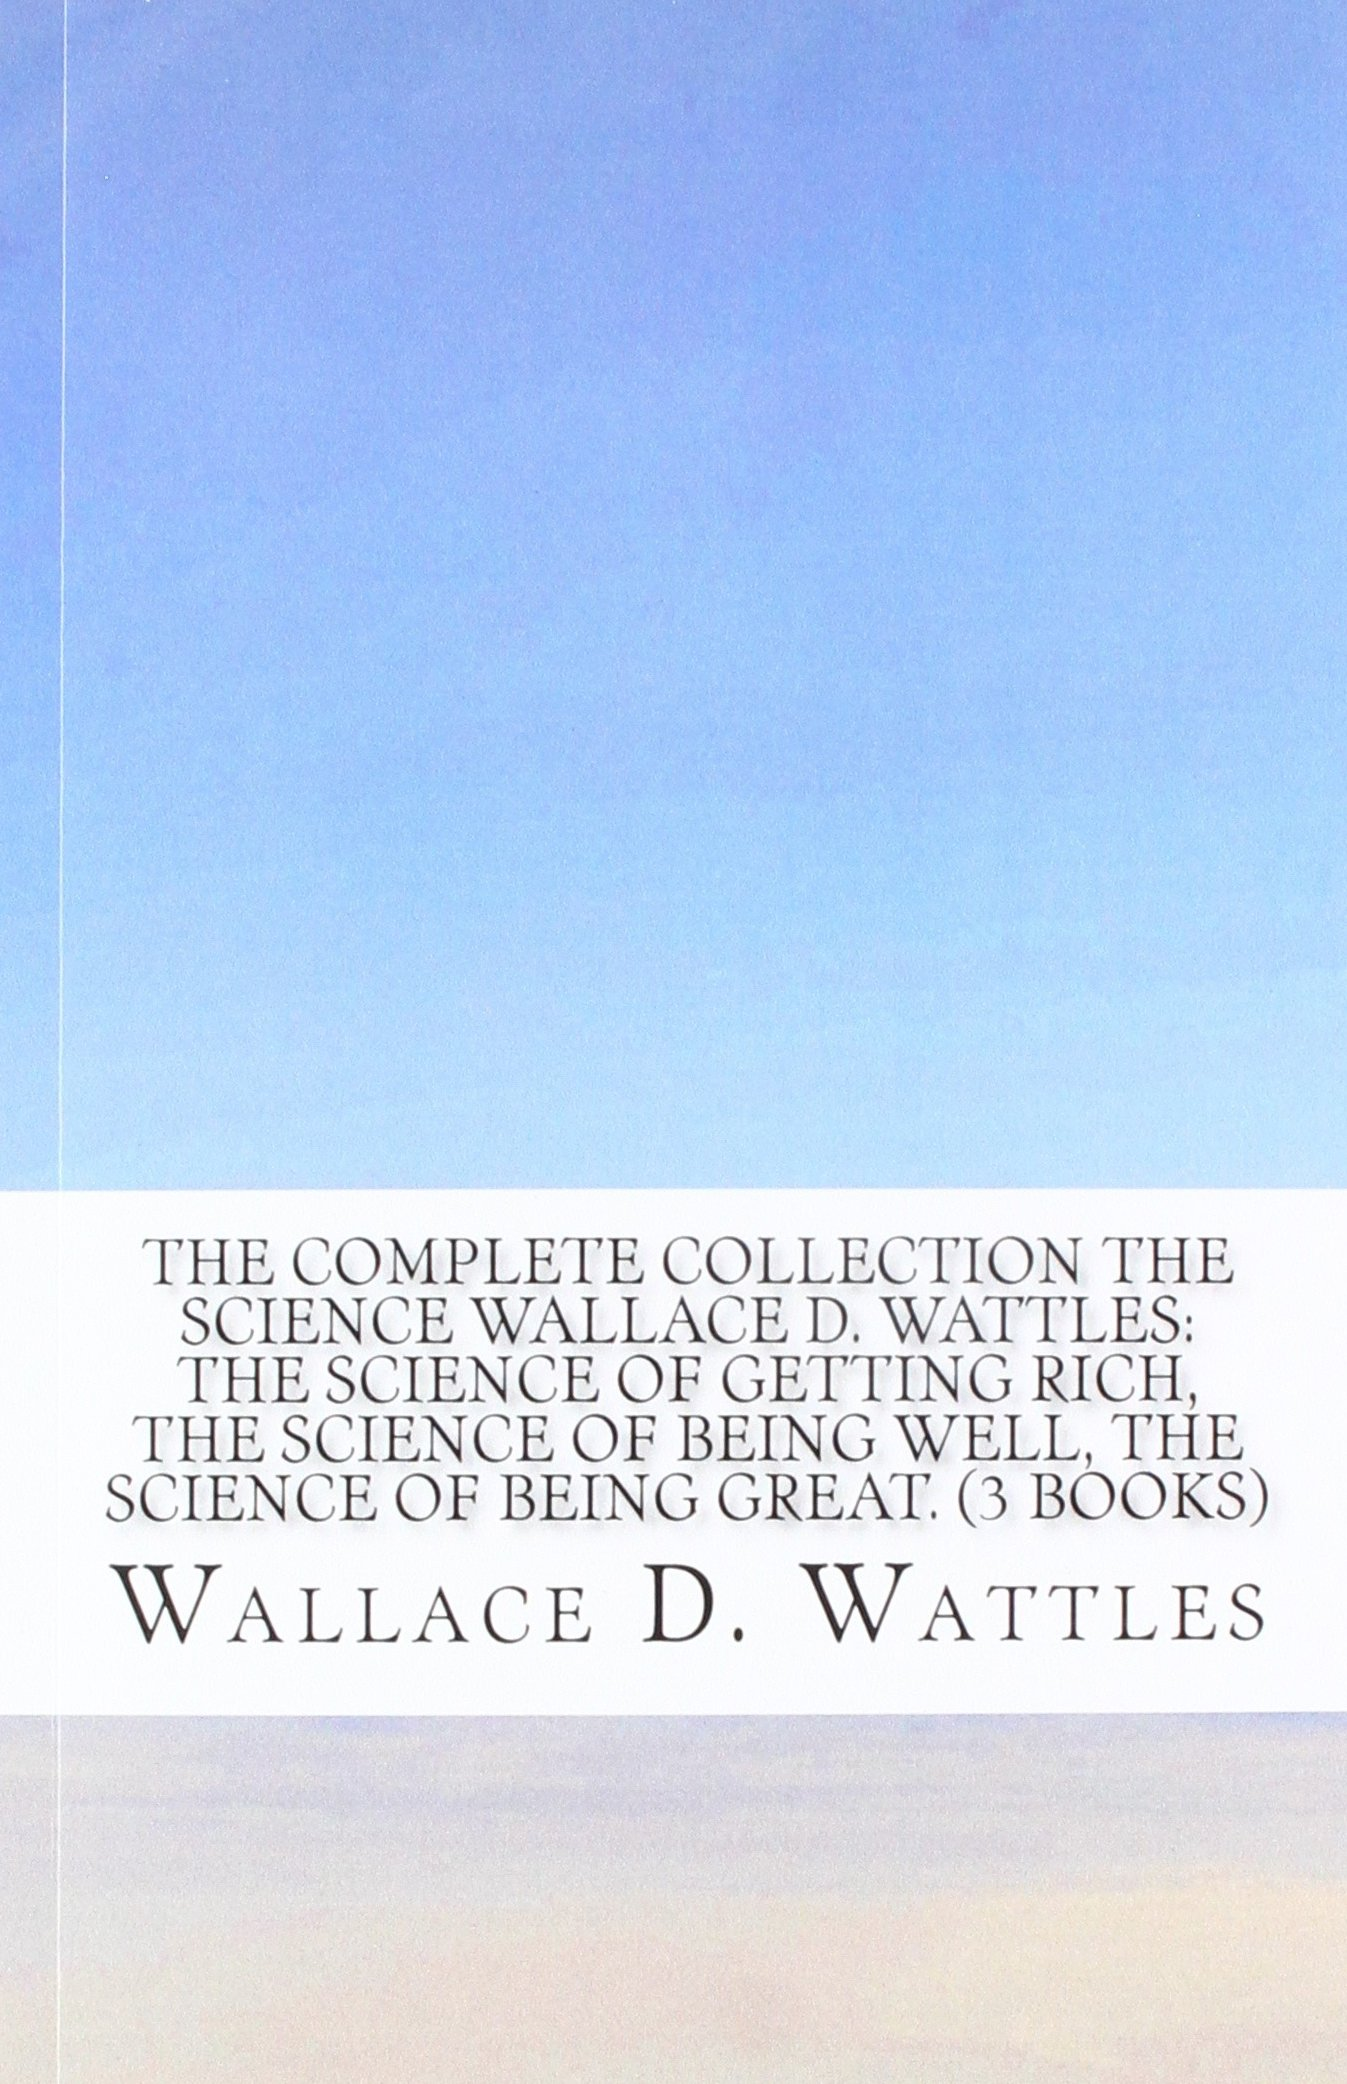 Download The Complete Collection The Science Wallace D. Wattles: The Science of Getting Rich, The Science of Being Well, The Science of Being Great. (3 Books) ebook